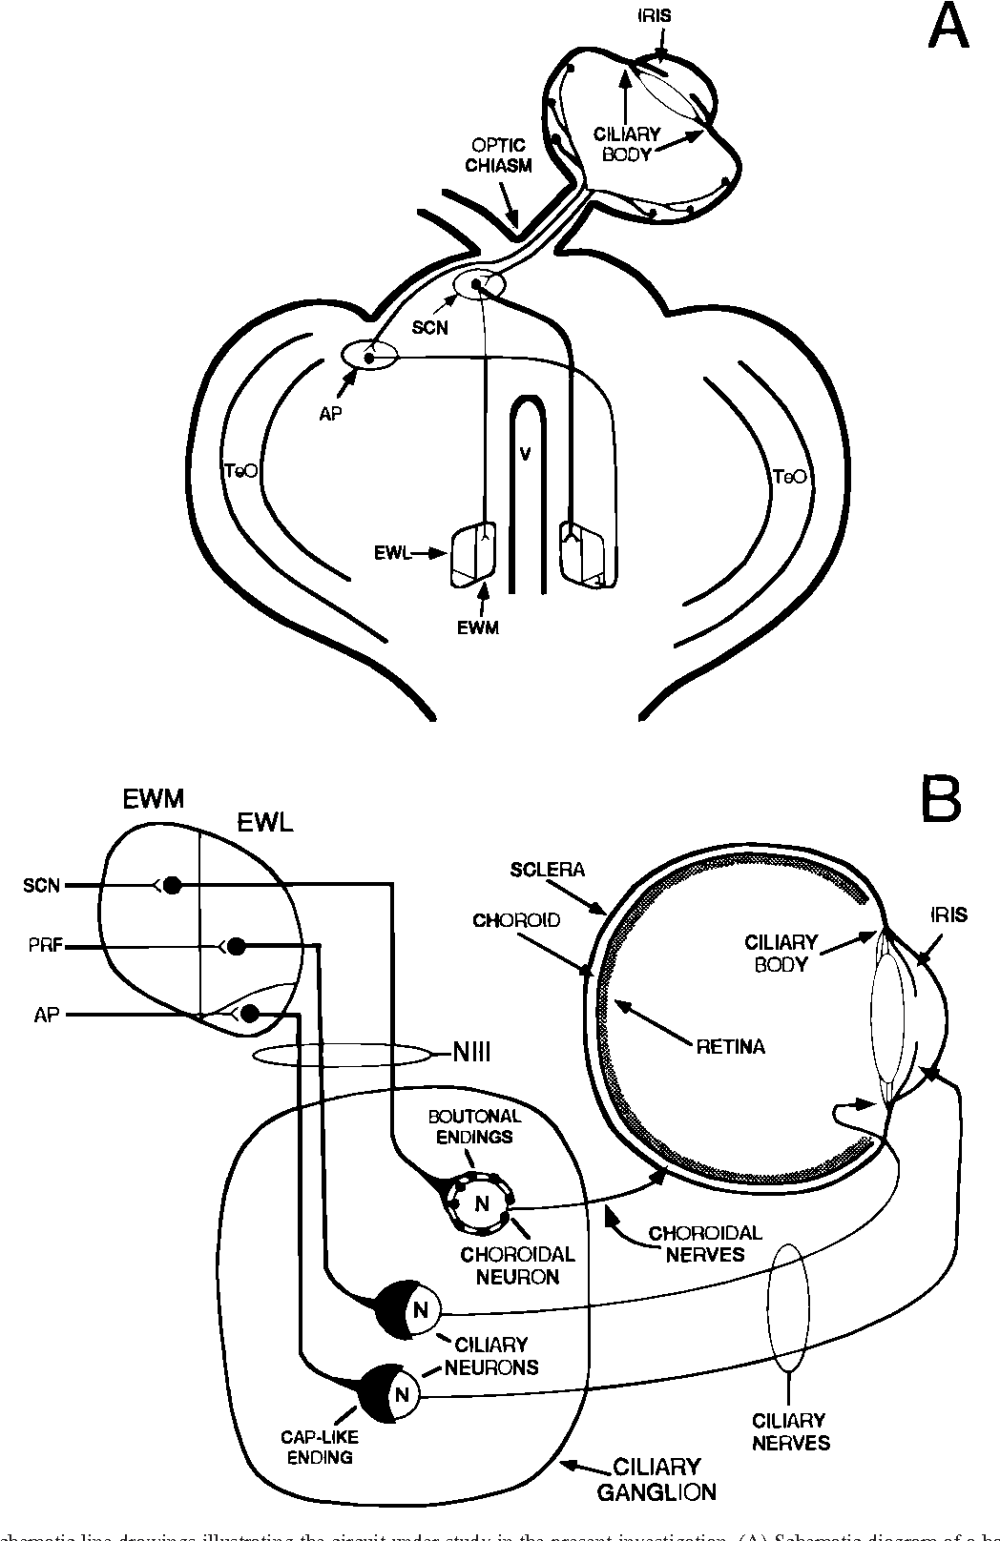 medium resolution of schematic line drawings illustrating the circuit under study in the present investigation